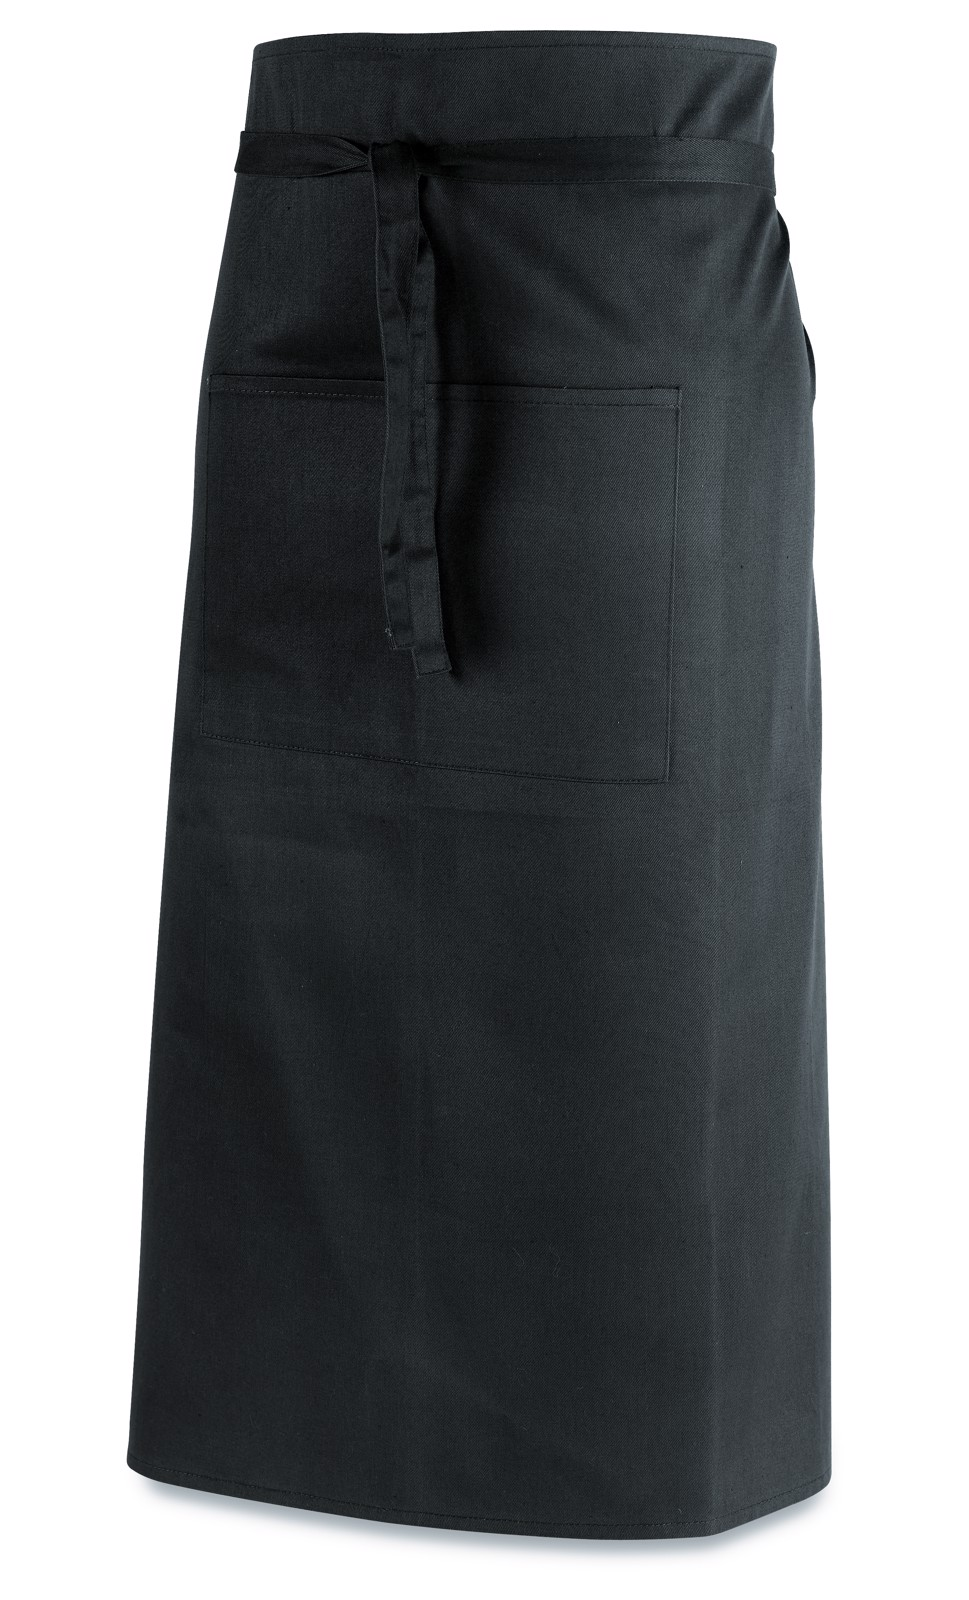 NAEKER. Bar apron in cotton and polyester